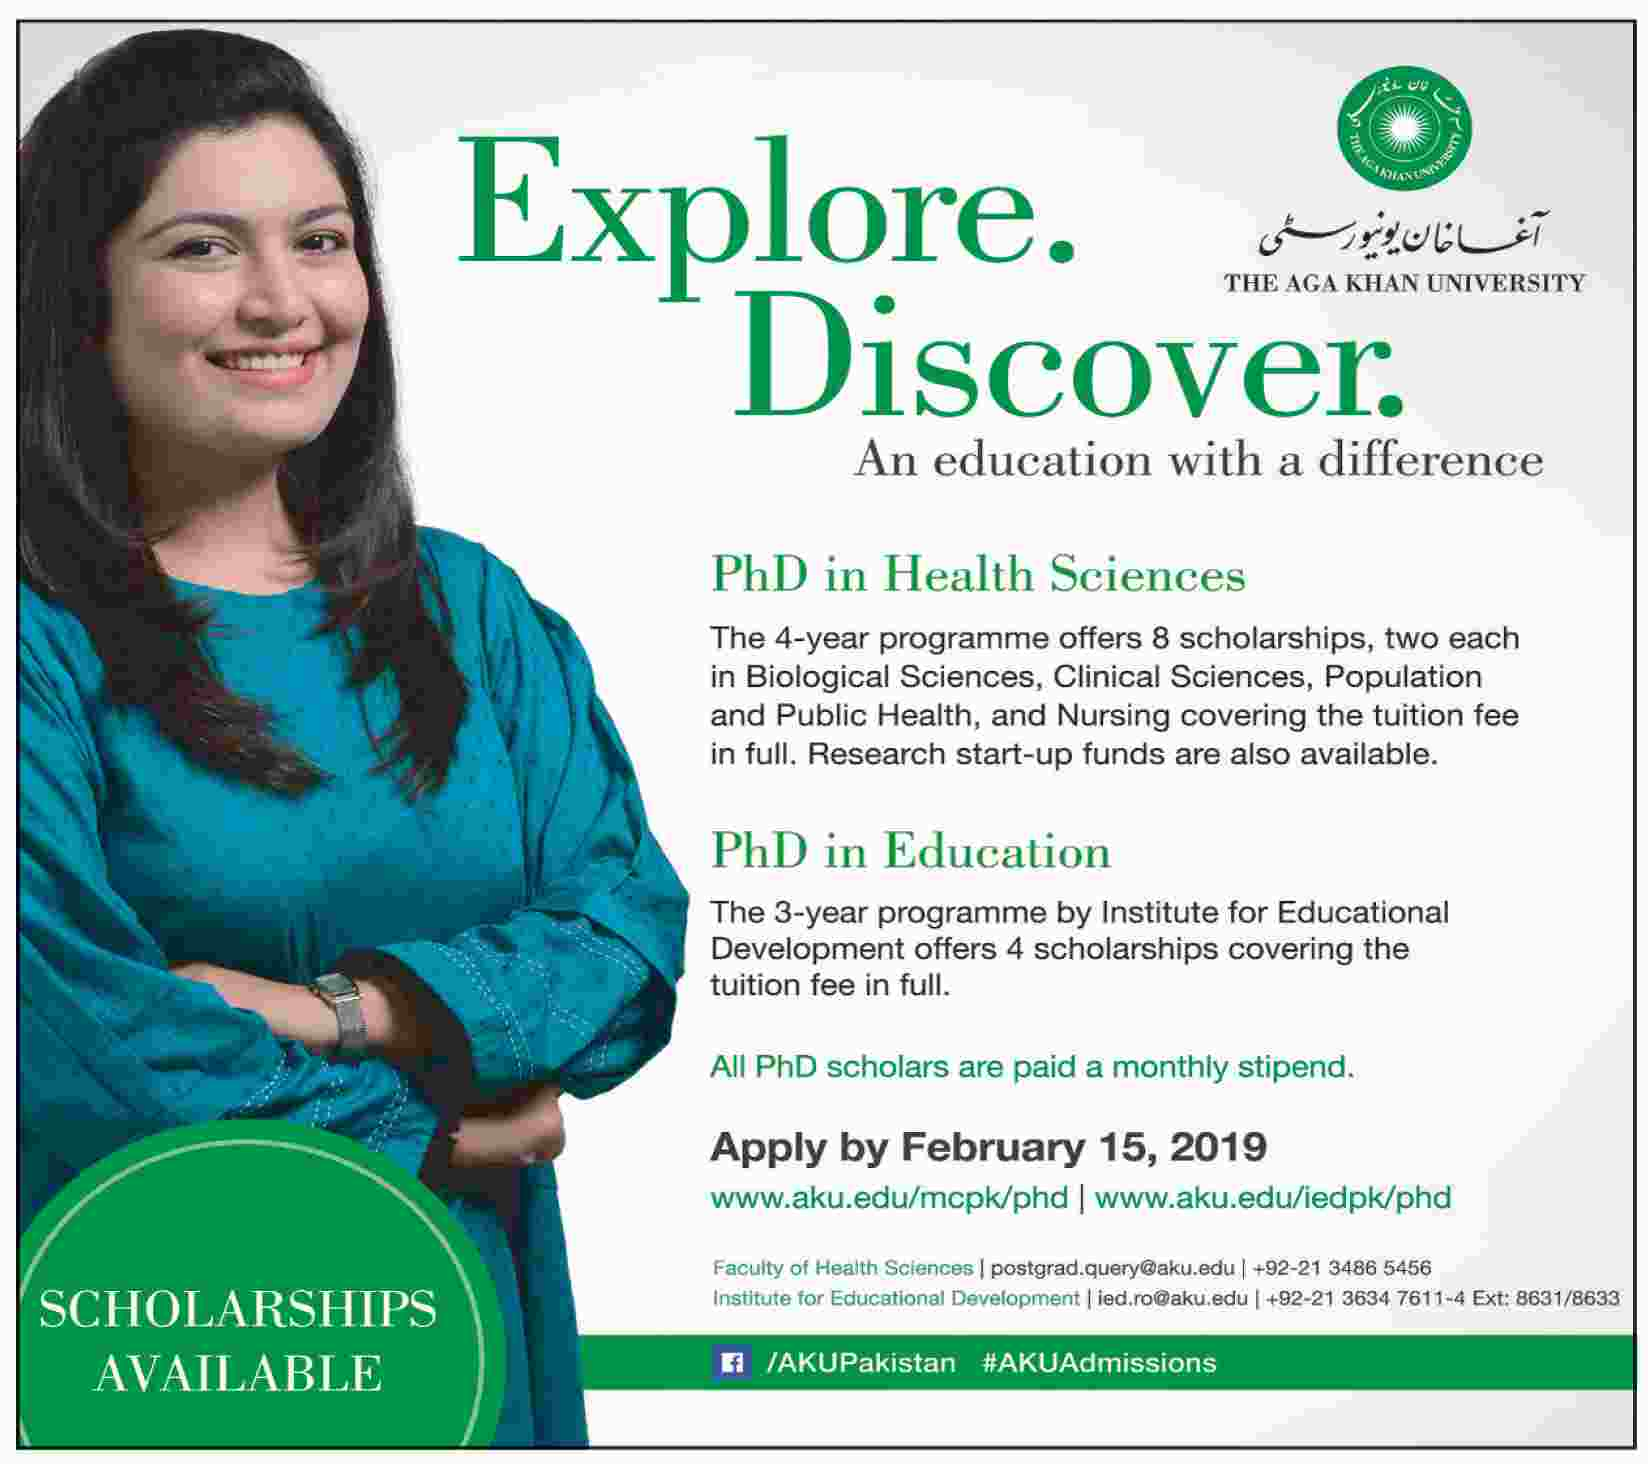 Scholarships for PhD in Health Sciences & Education - The Aga Khan University